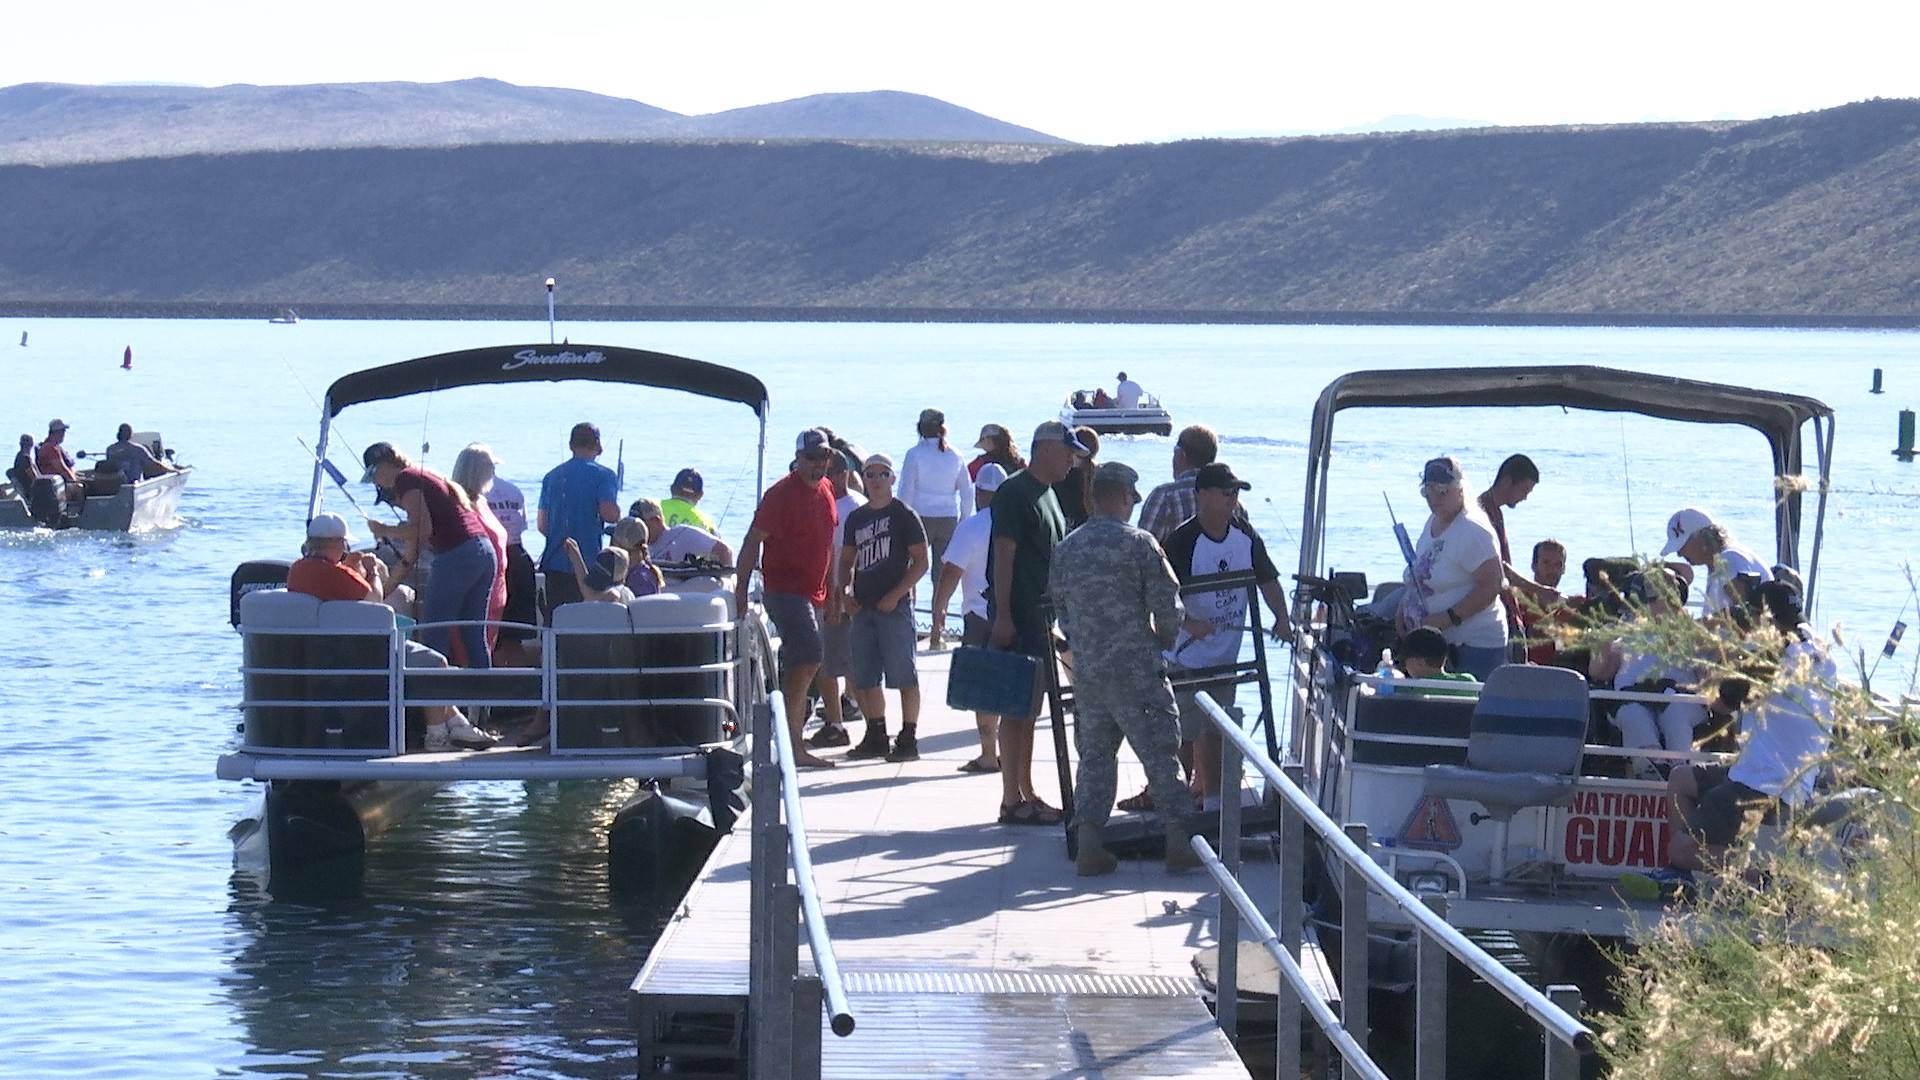 The 10th annual Fish 'n Fun fishing derby helped disabled people in Washington County get out and enjoy a day on the lake at Sand Hollow State Park. Hurricane, Utah, June 4, 2016 | Photo by Sheldon Demke, St. George News